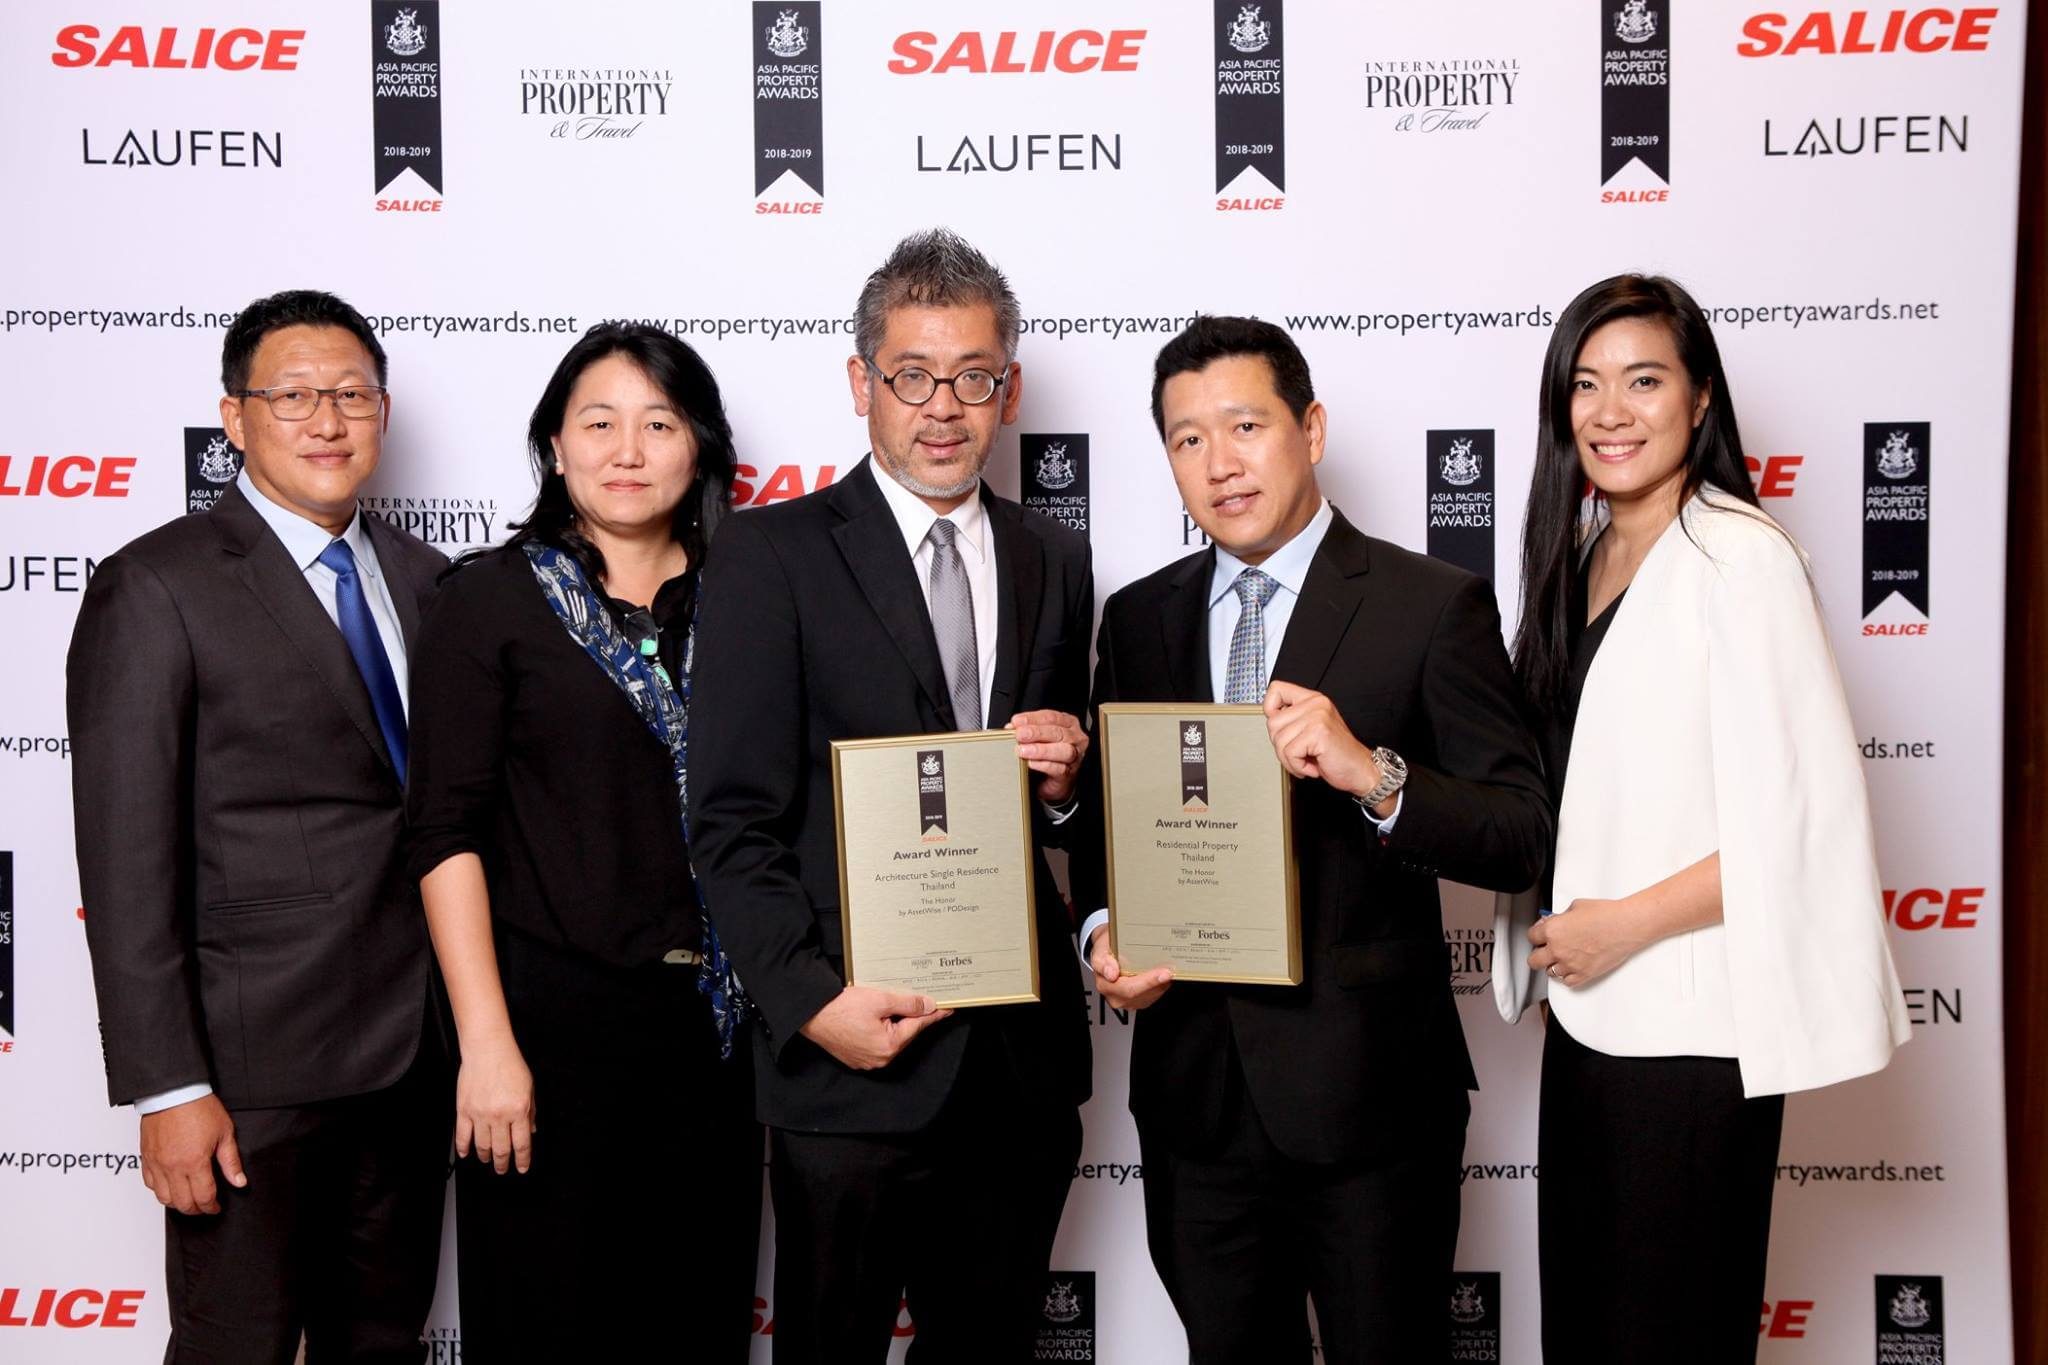 PACIFIC PROPERTY AWARDS 2018-2019